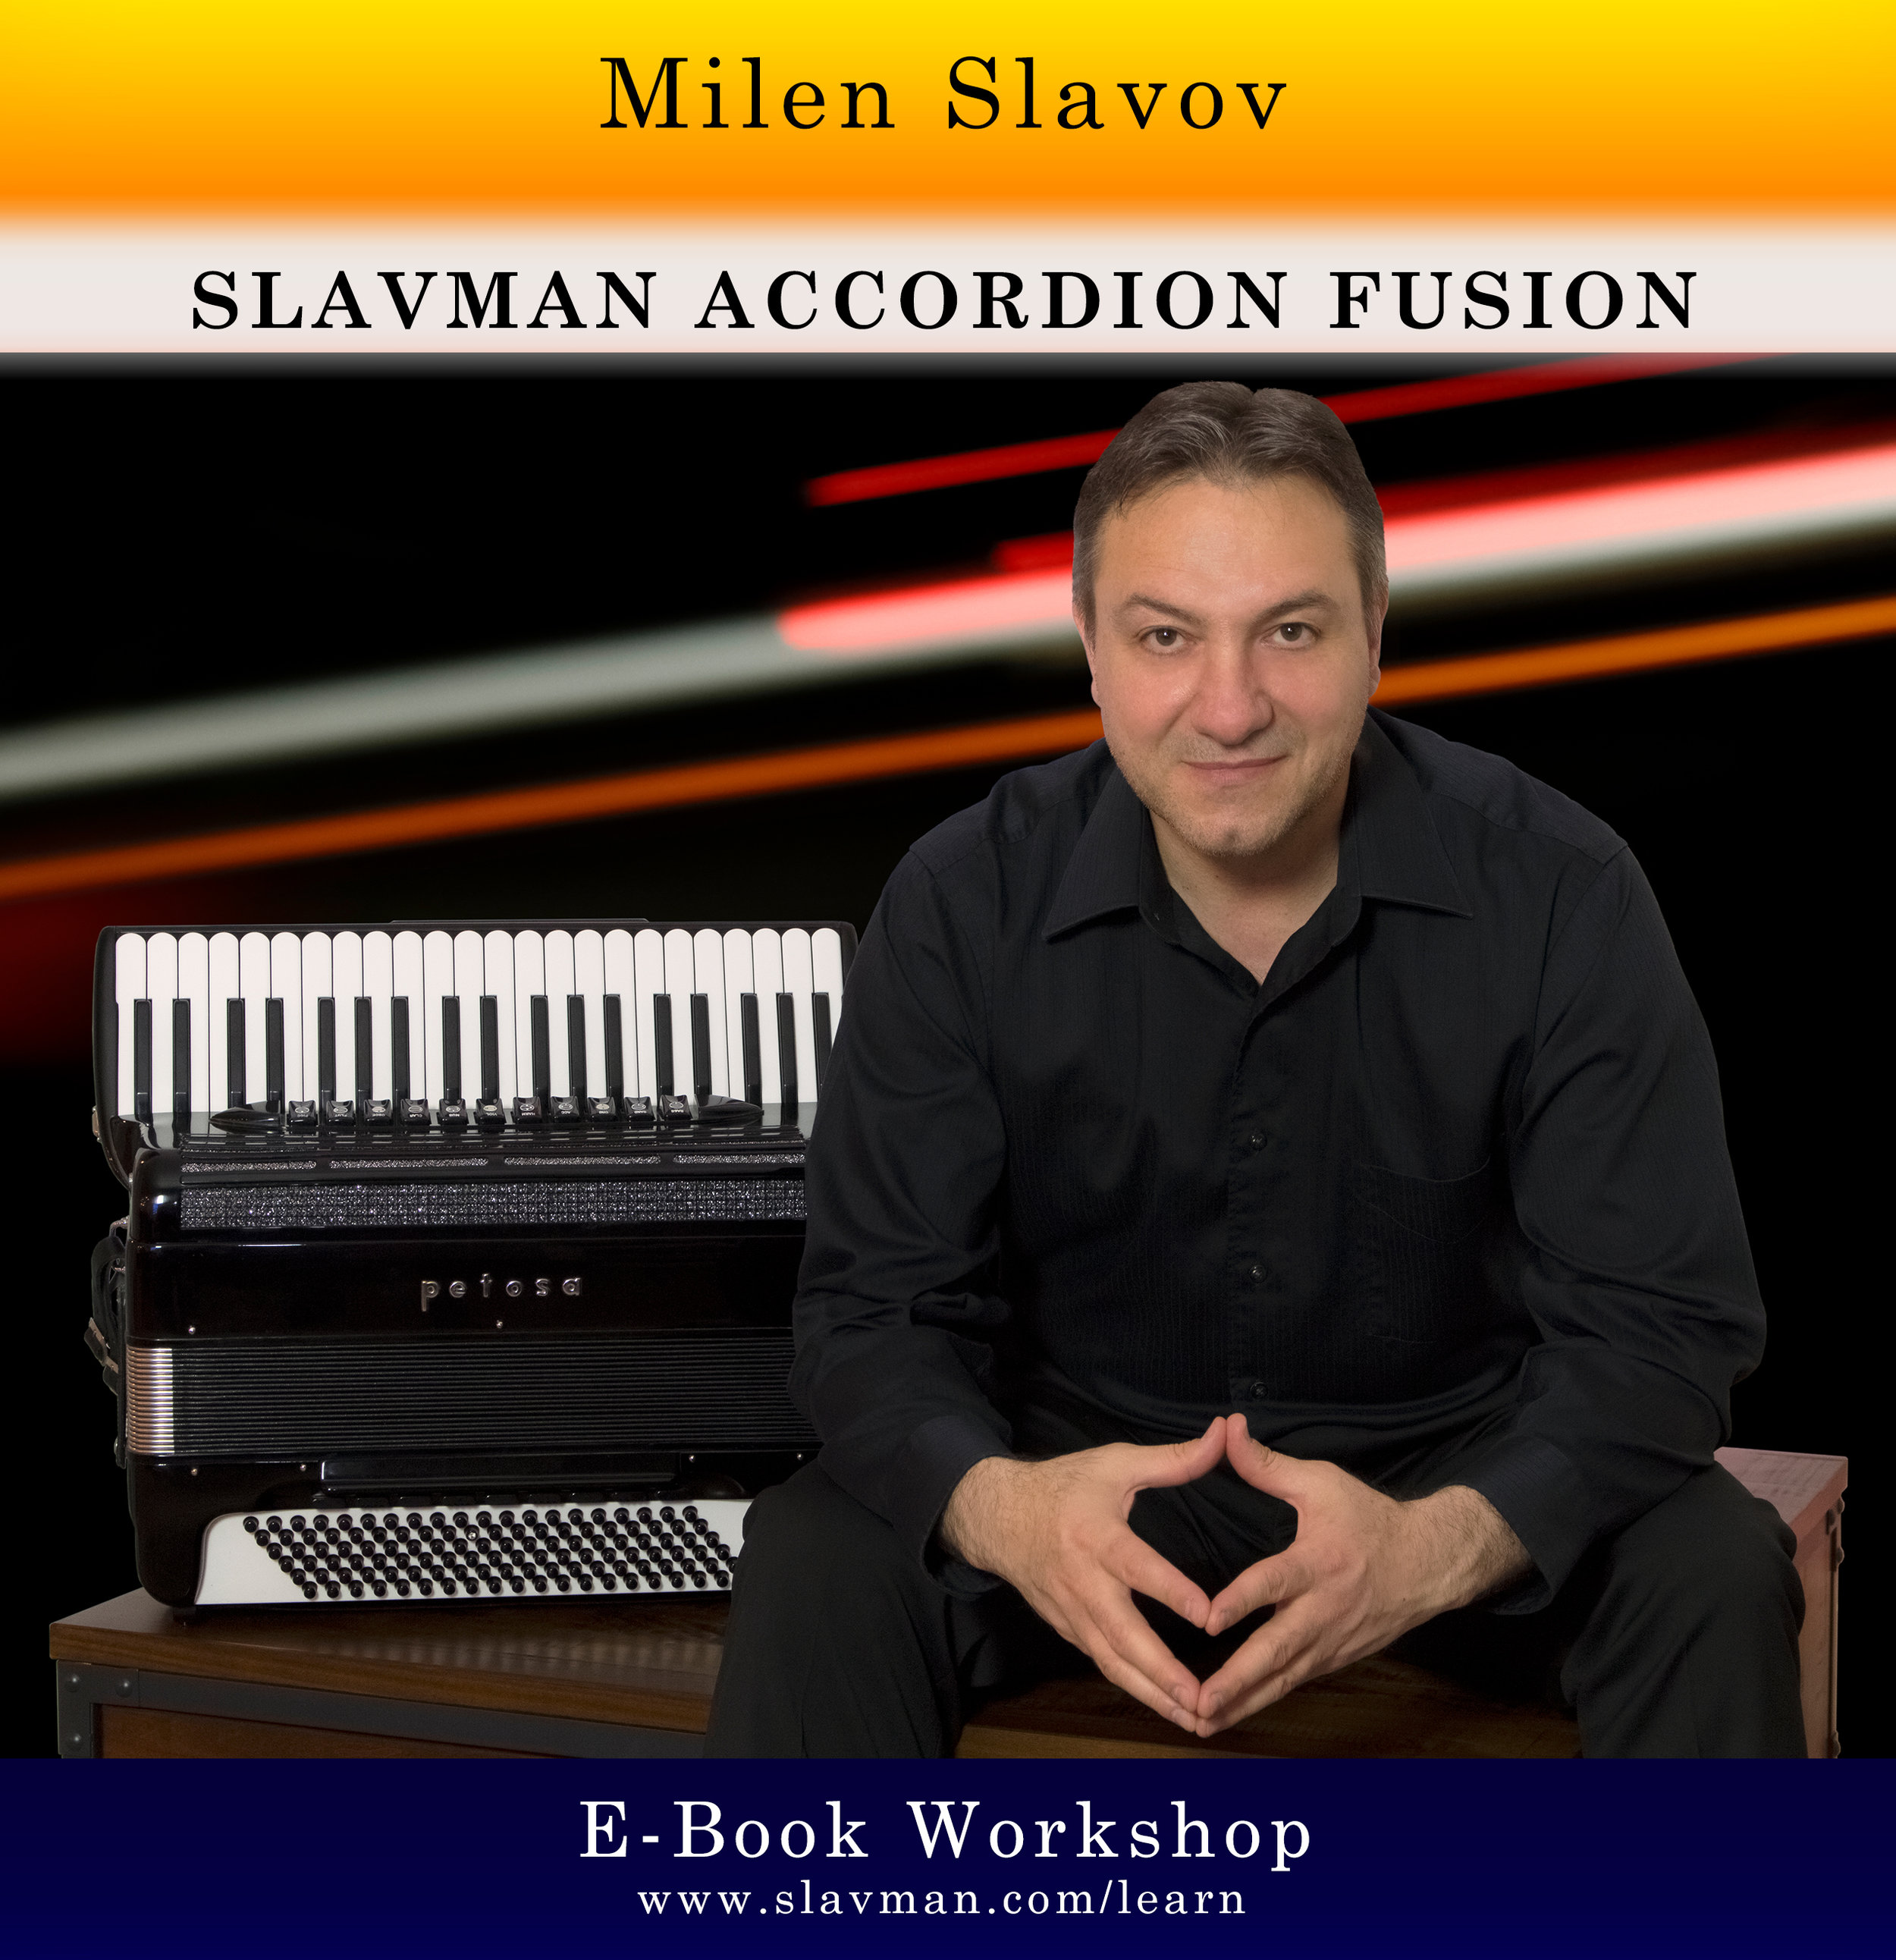 01-accordion_fusion-main-product-image.jpg